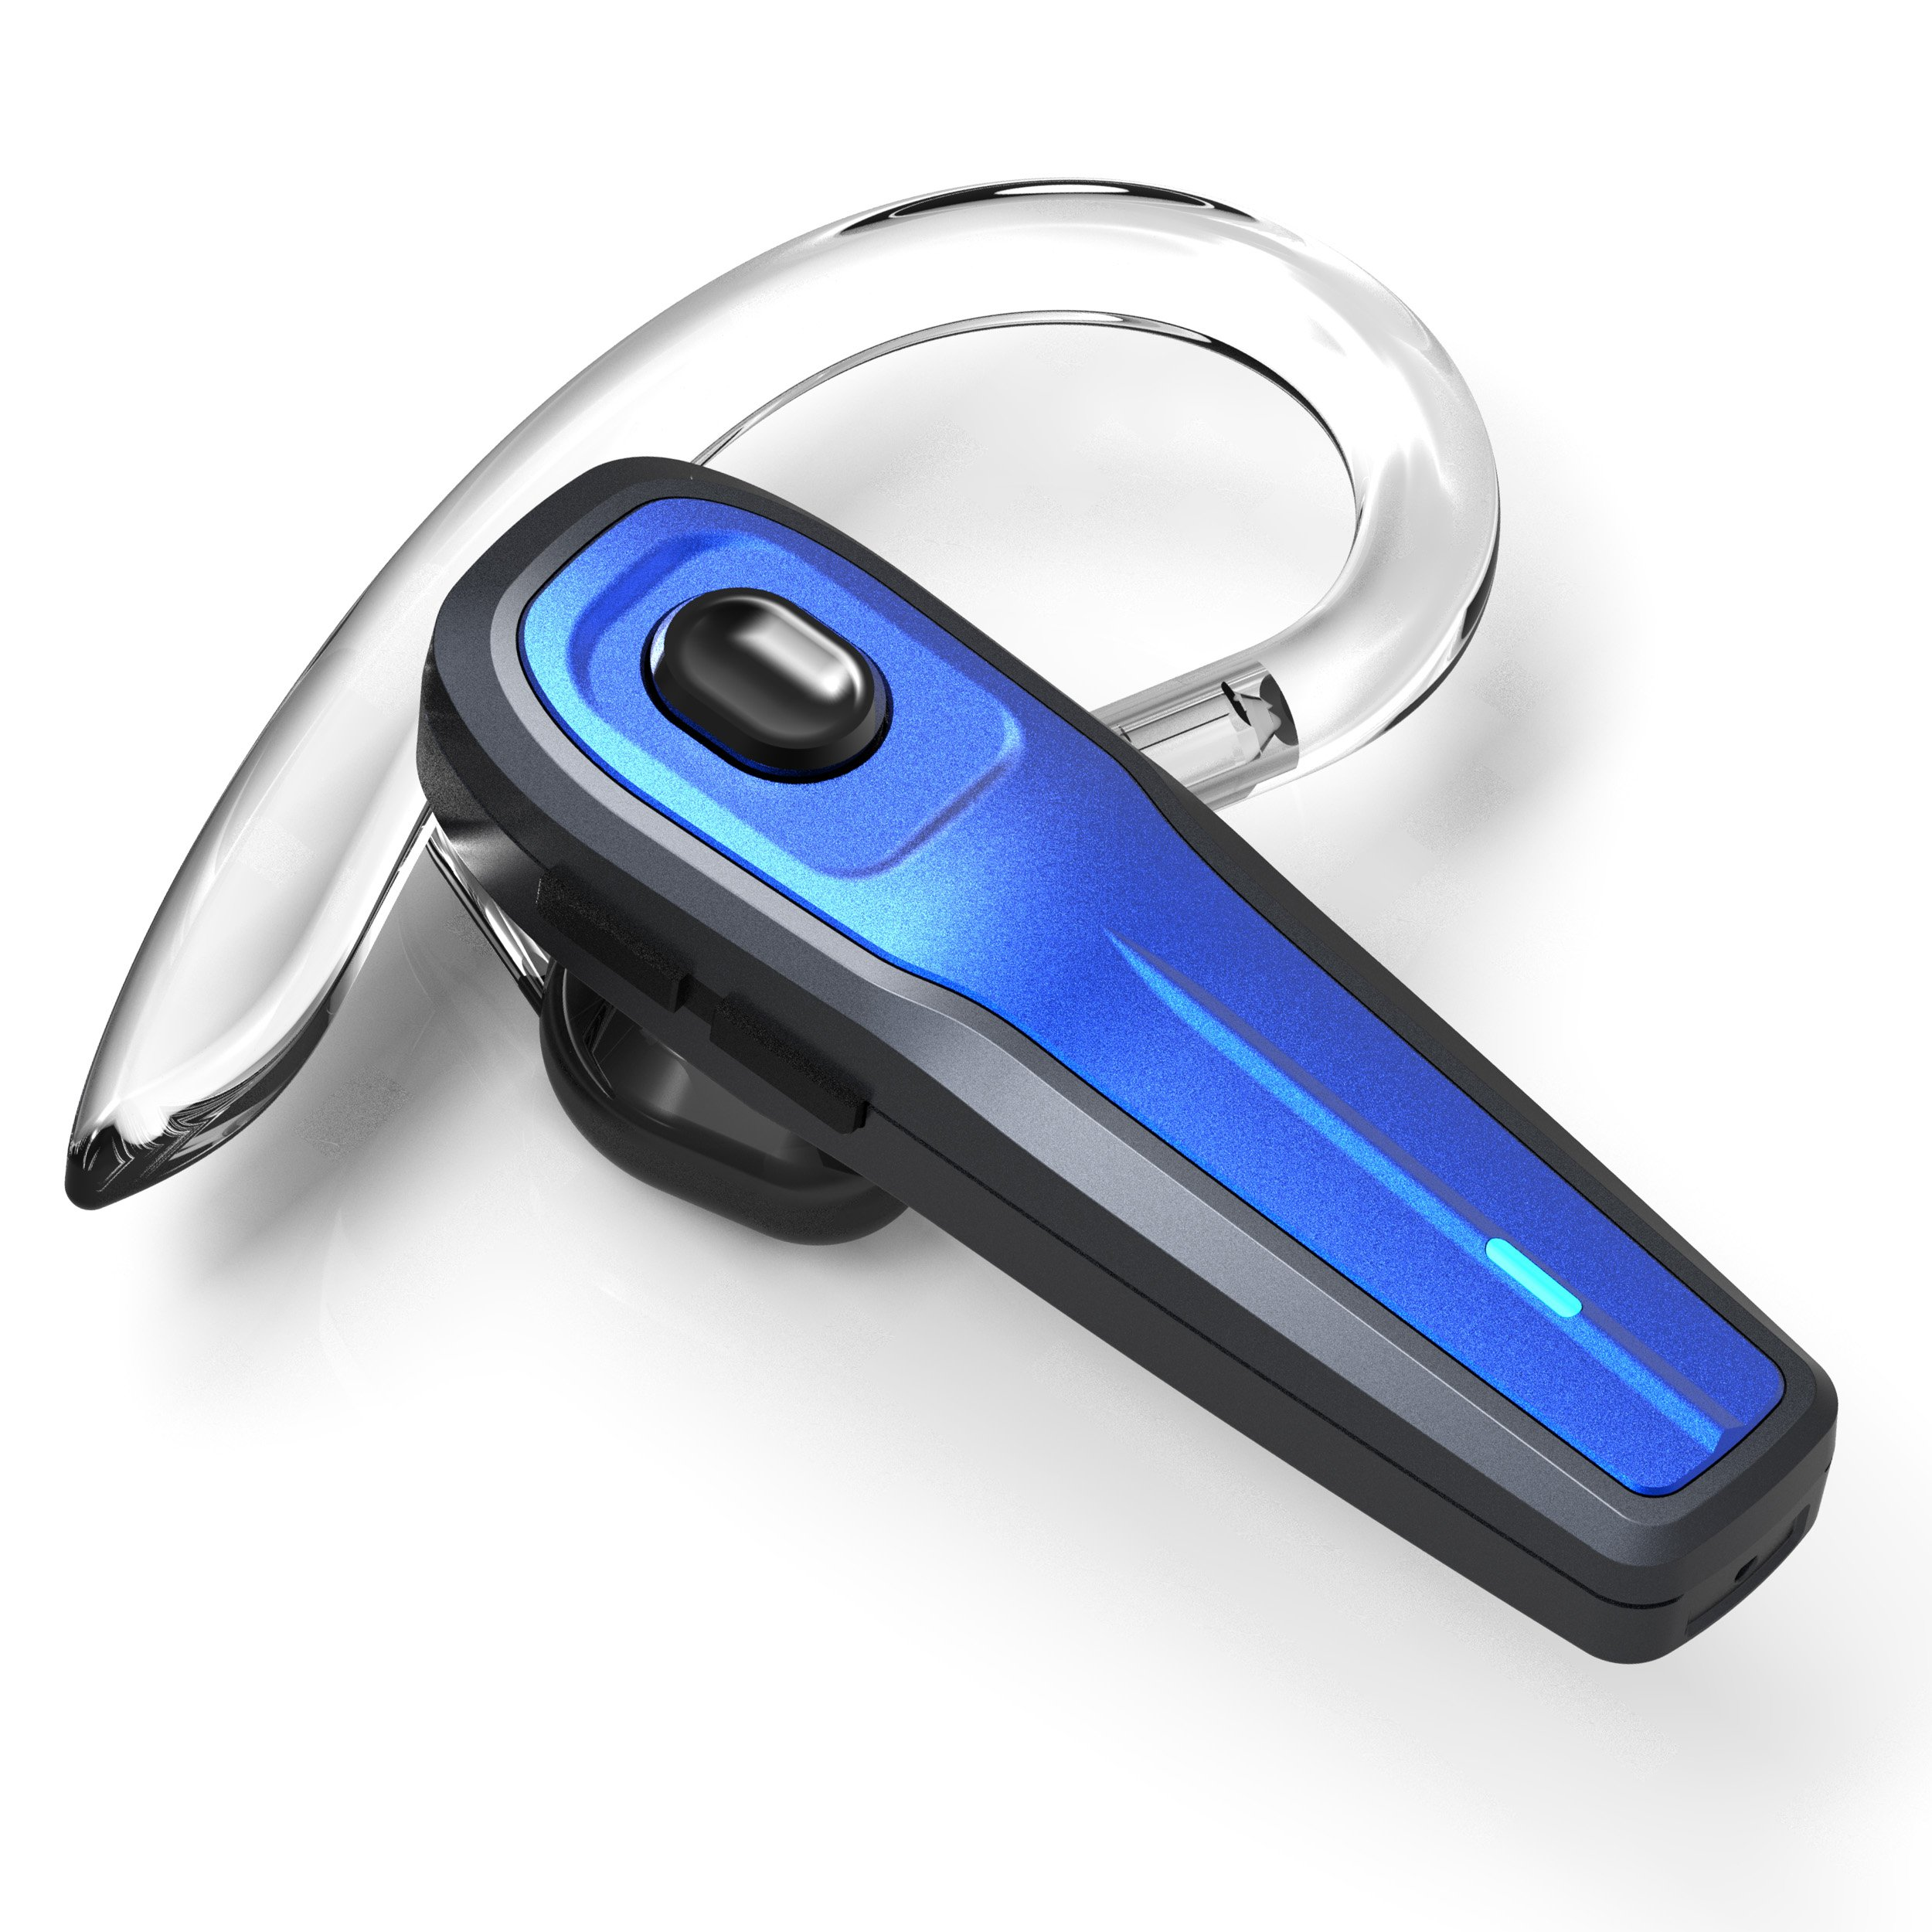 Bluetooth Headset K10 Wireless Earpiece Headphones With: Bluetooth Headset Wireless Earpiece Noise Reduction Mic